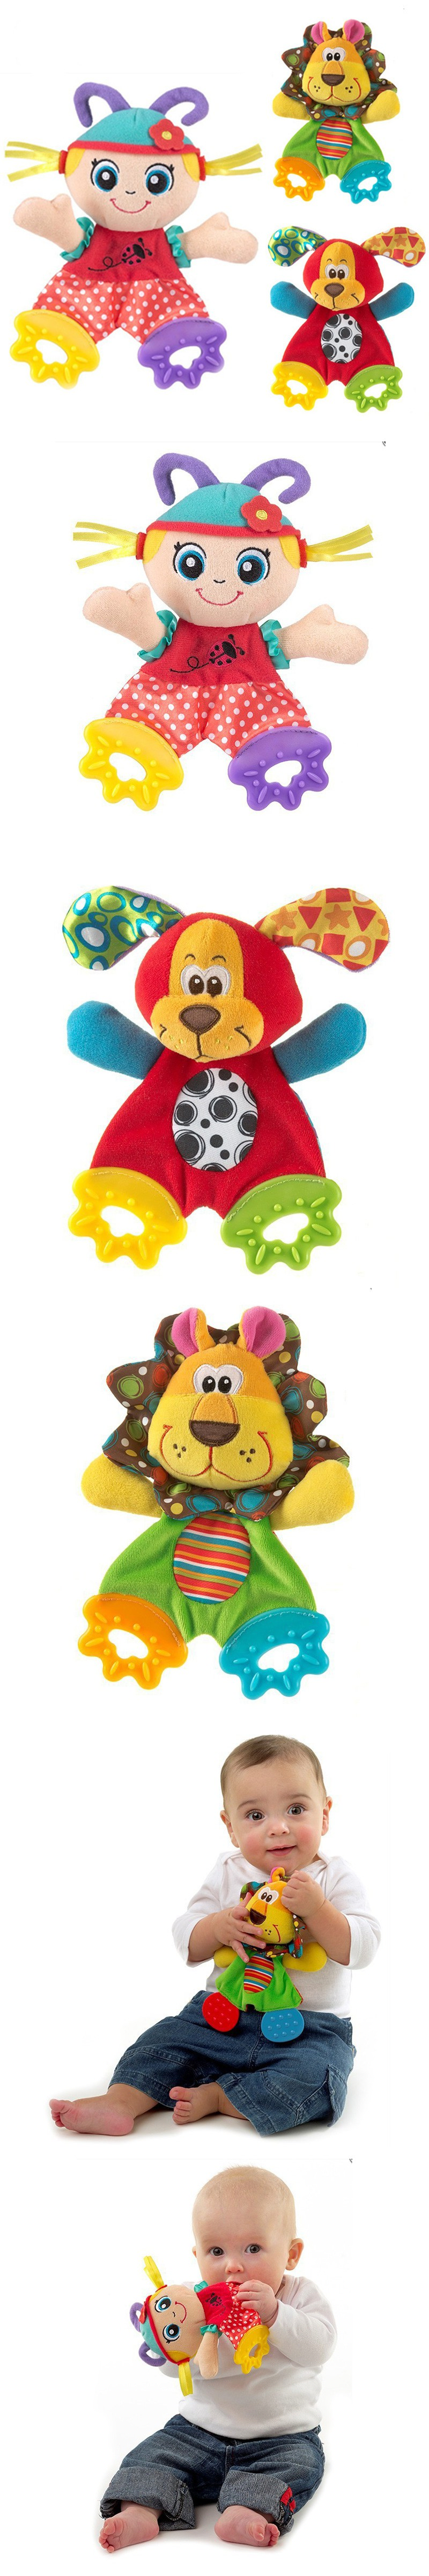 Baby toys images cartoon  Cartoon Animals Girl Baby Teethers Ring Paper Appease Baby Toys Baby